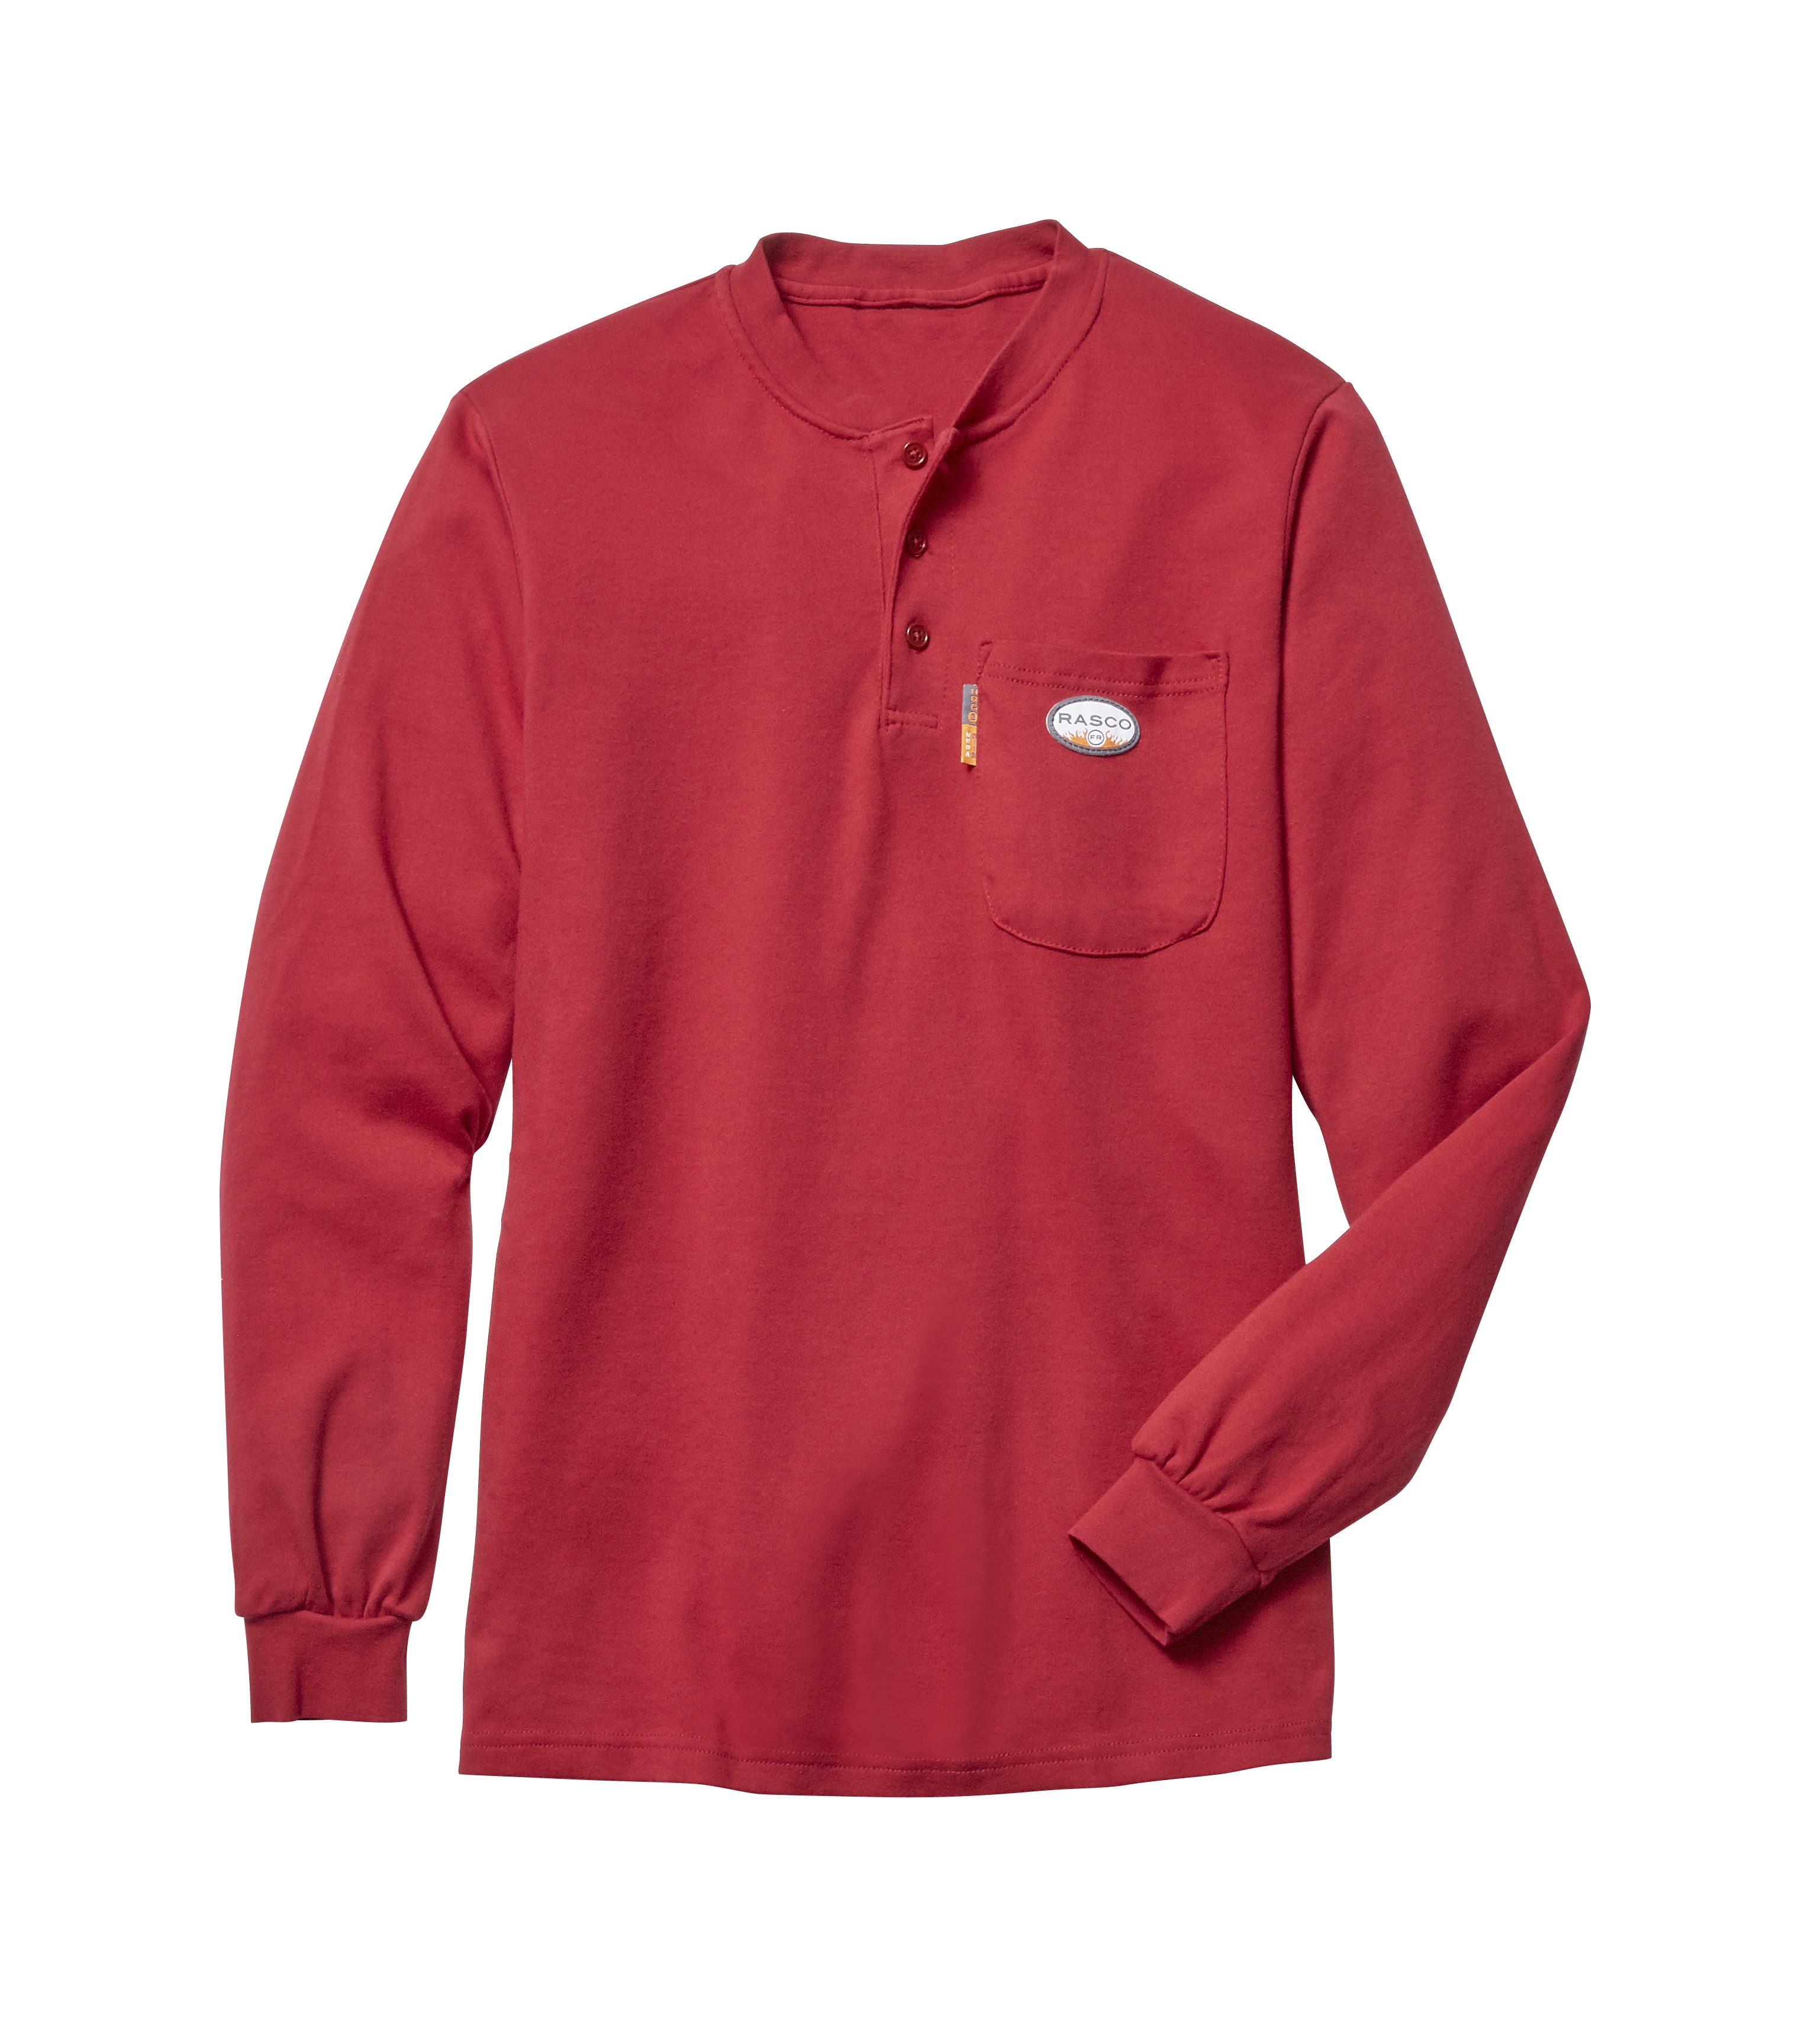 Rasco Flame Resistant Henley T-Shirt - Red